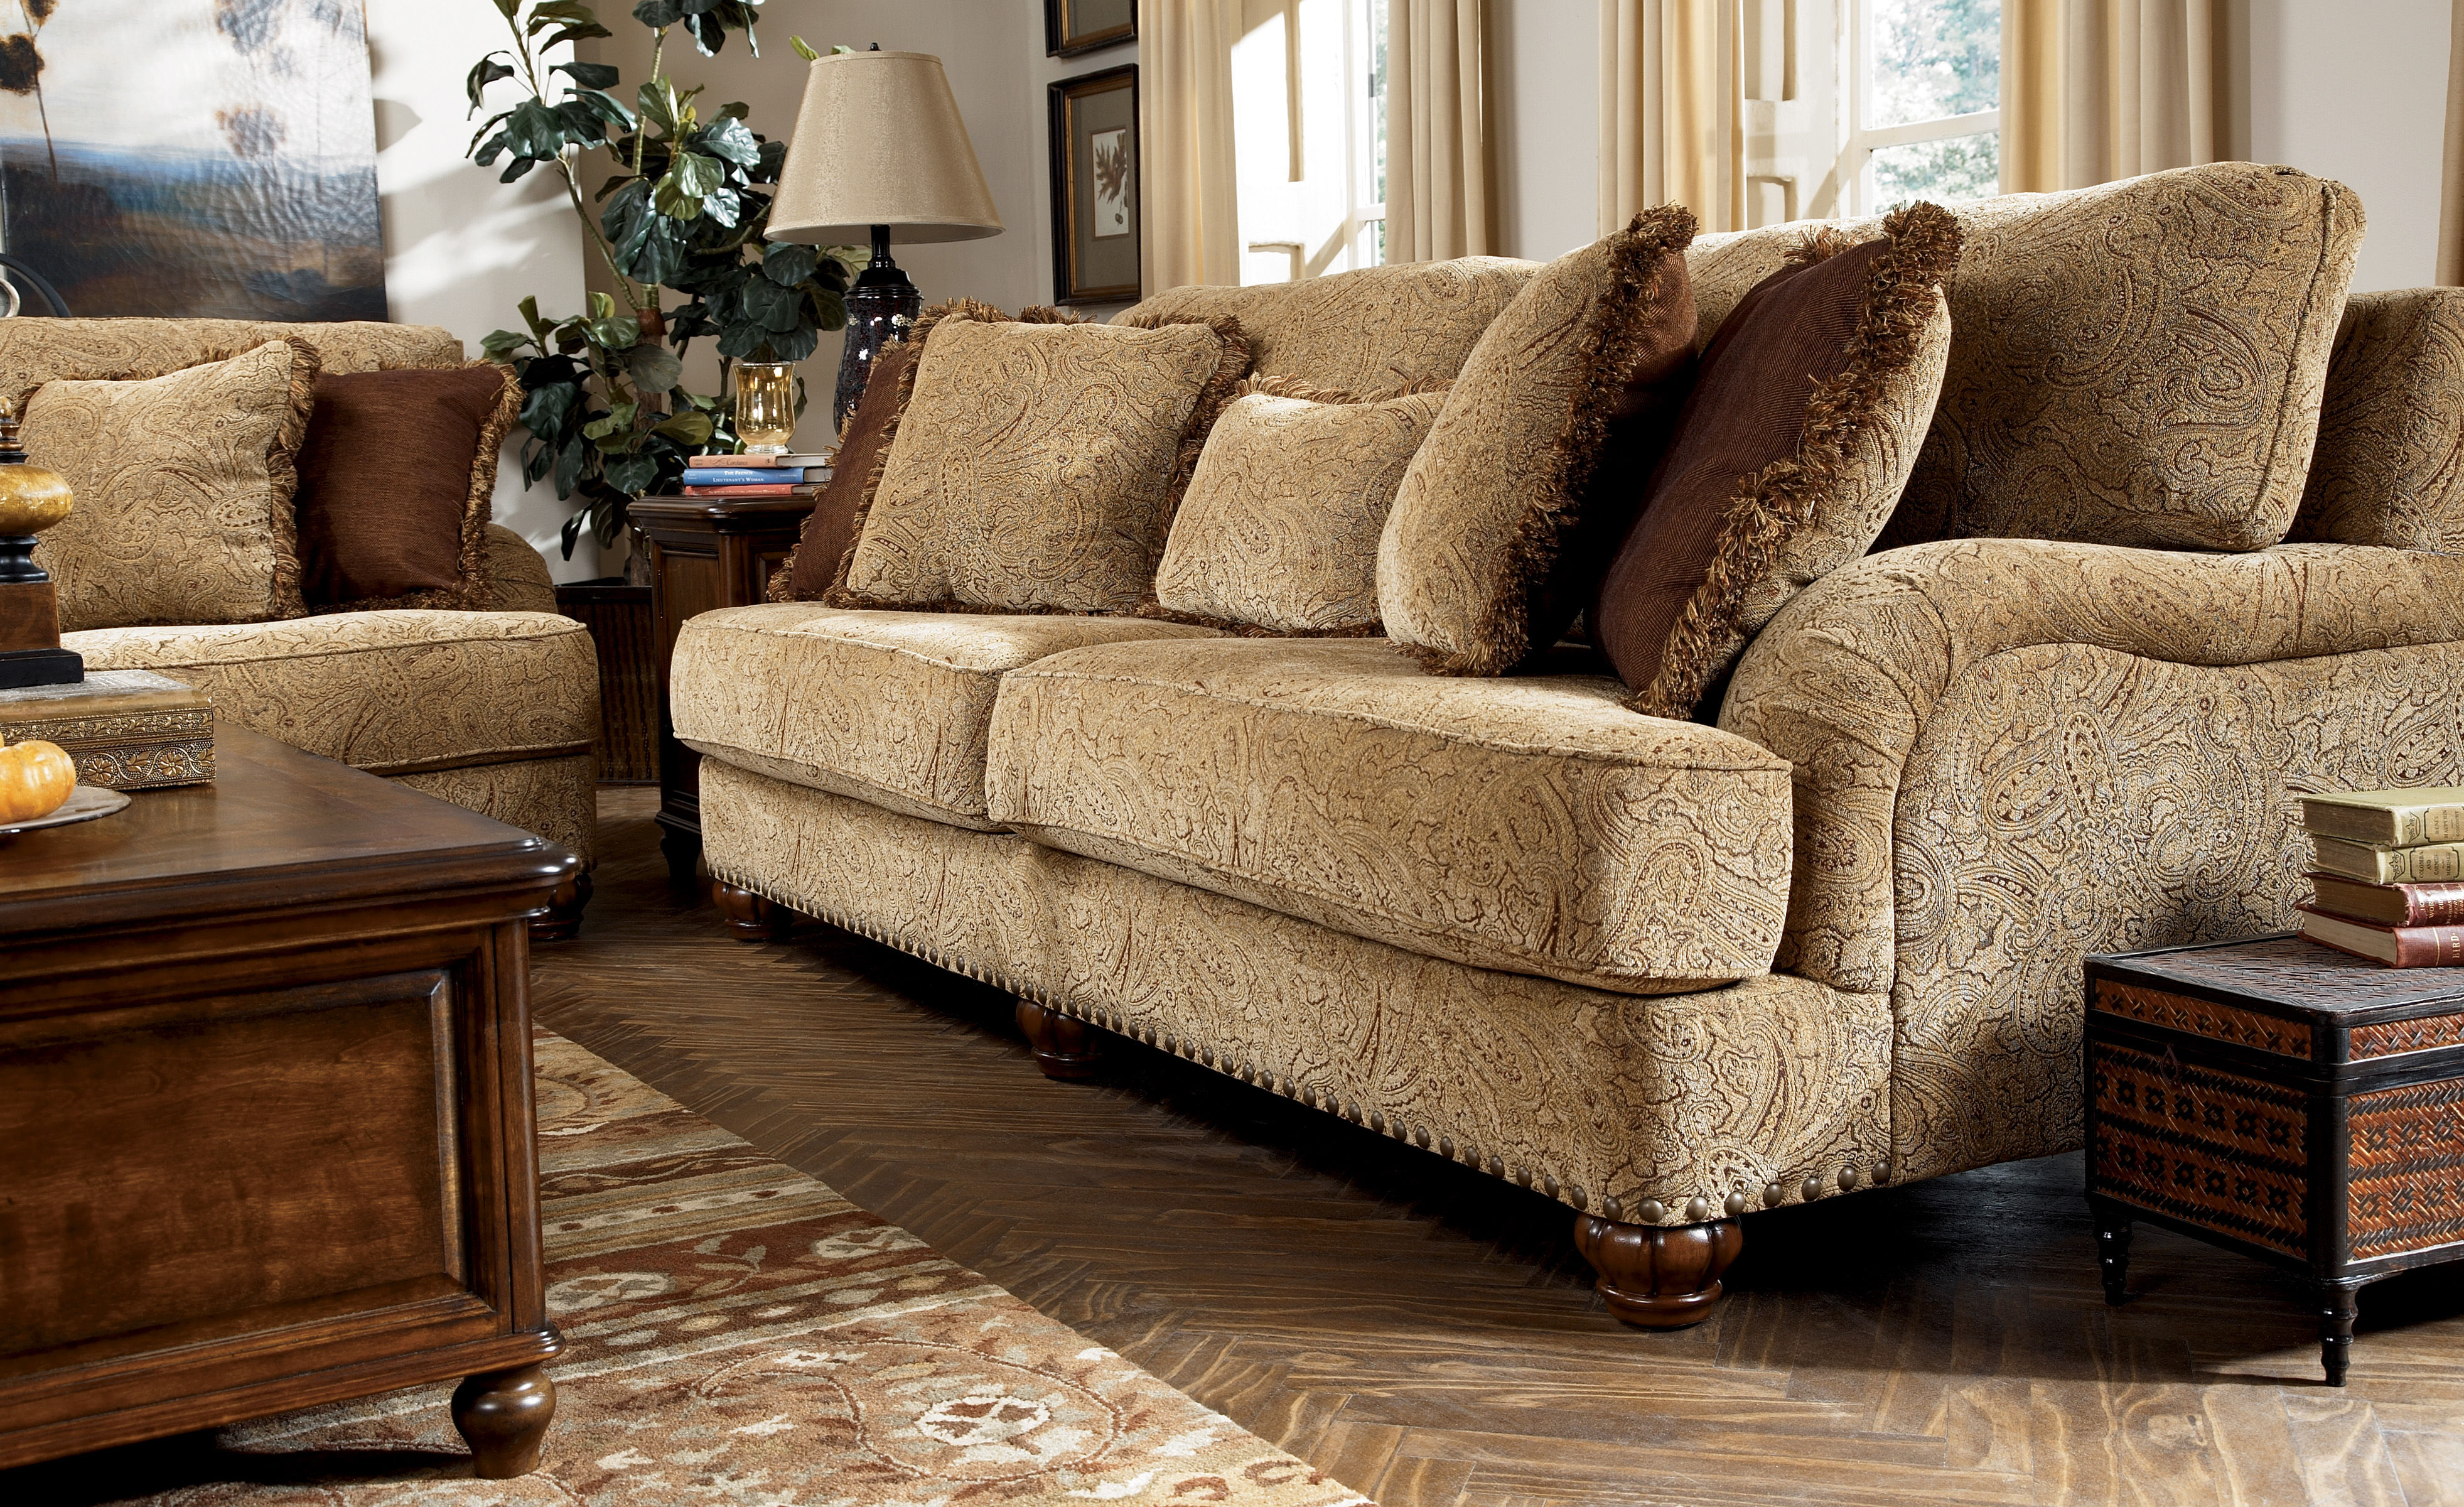 b77988b999f1 Stansberry - Vintage Sofa Click To Enlarge Click To Enlarge Click To  Enlarge ...